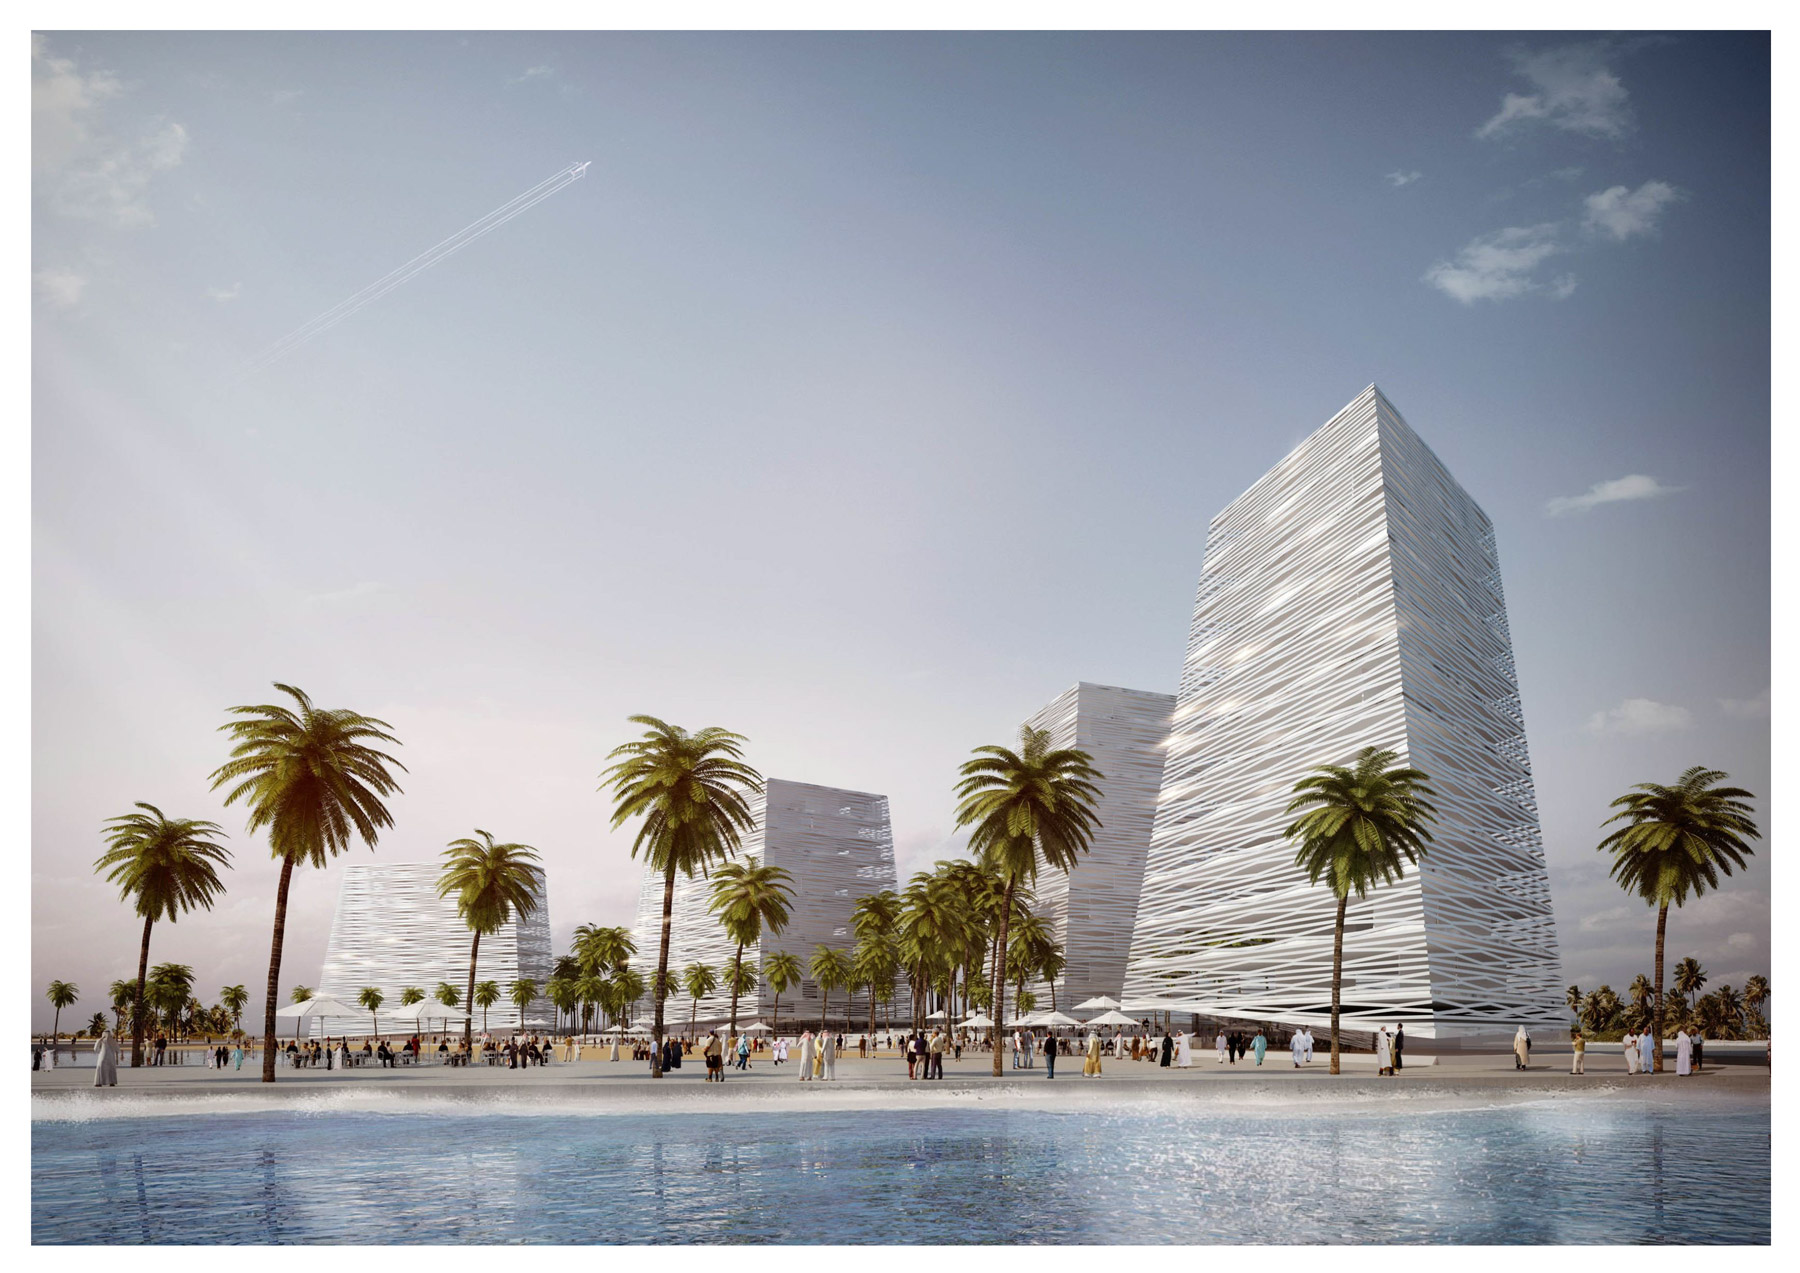 161_Lusail_S1S2_Slide_01